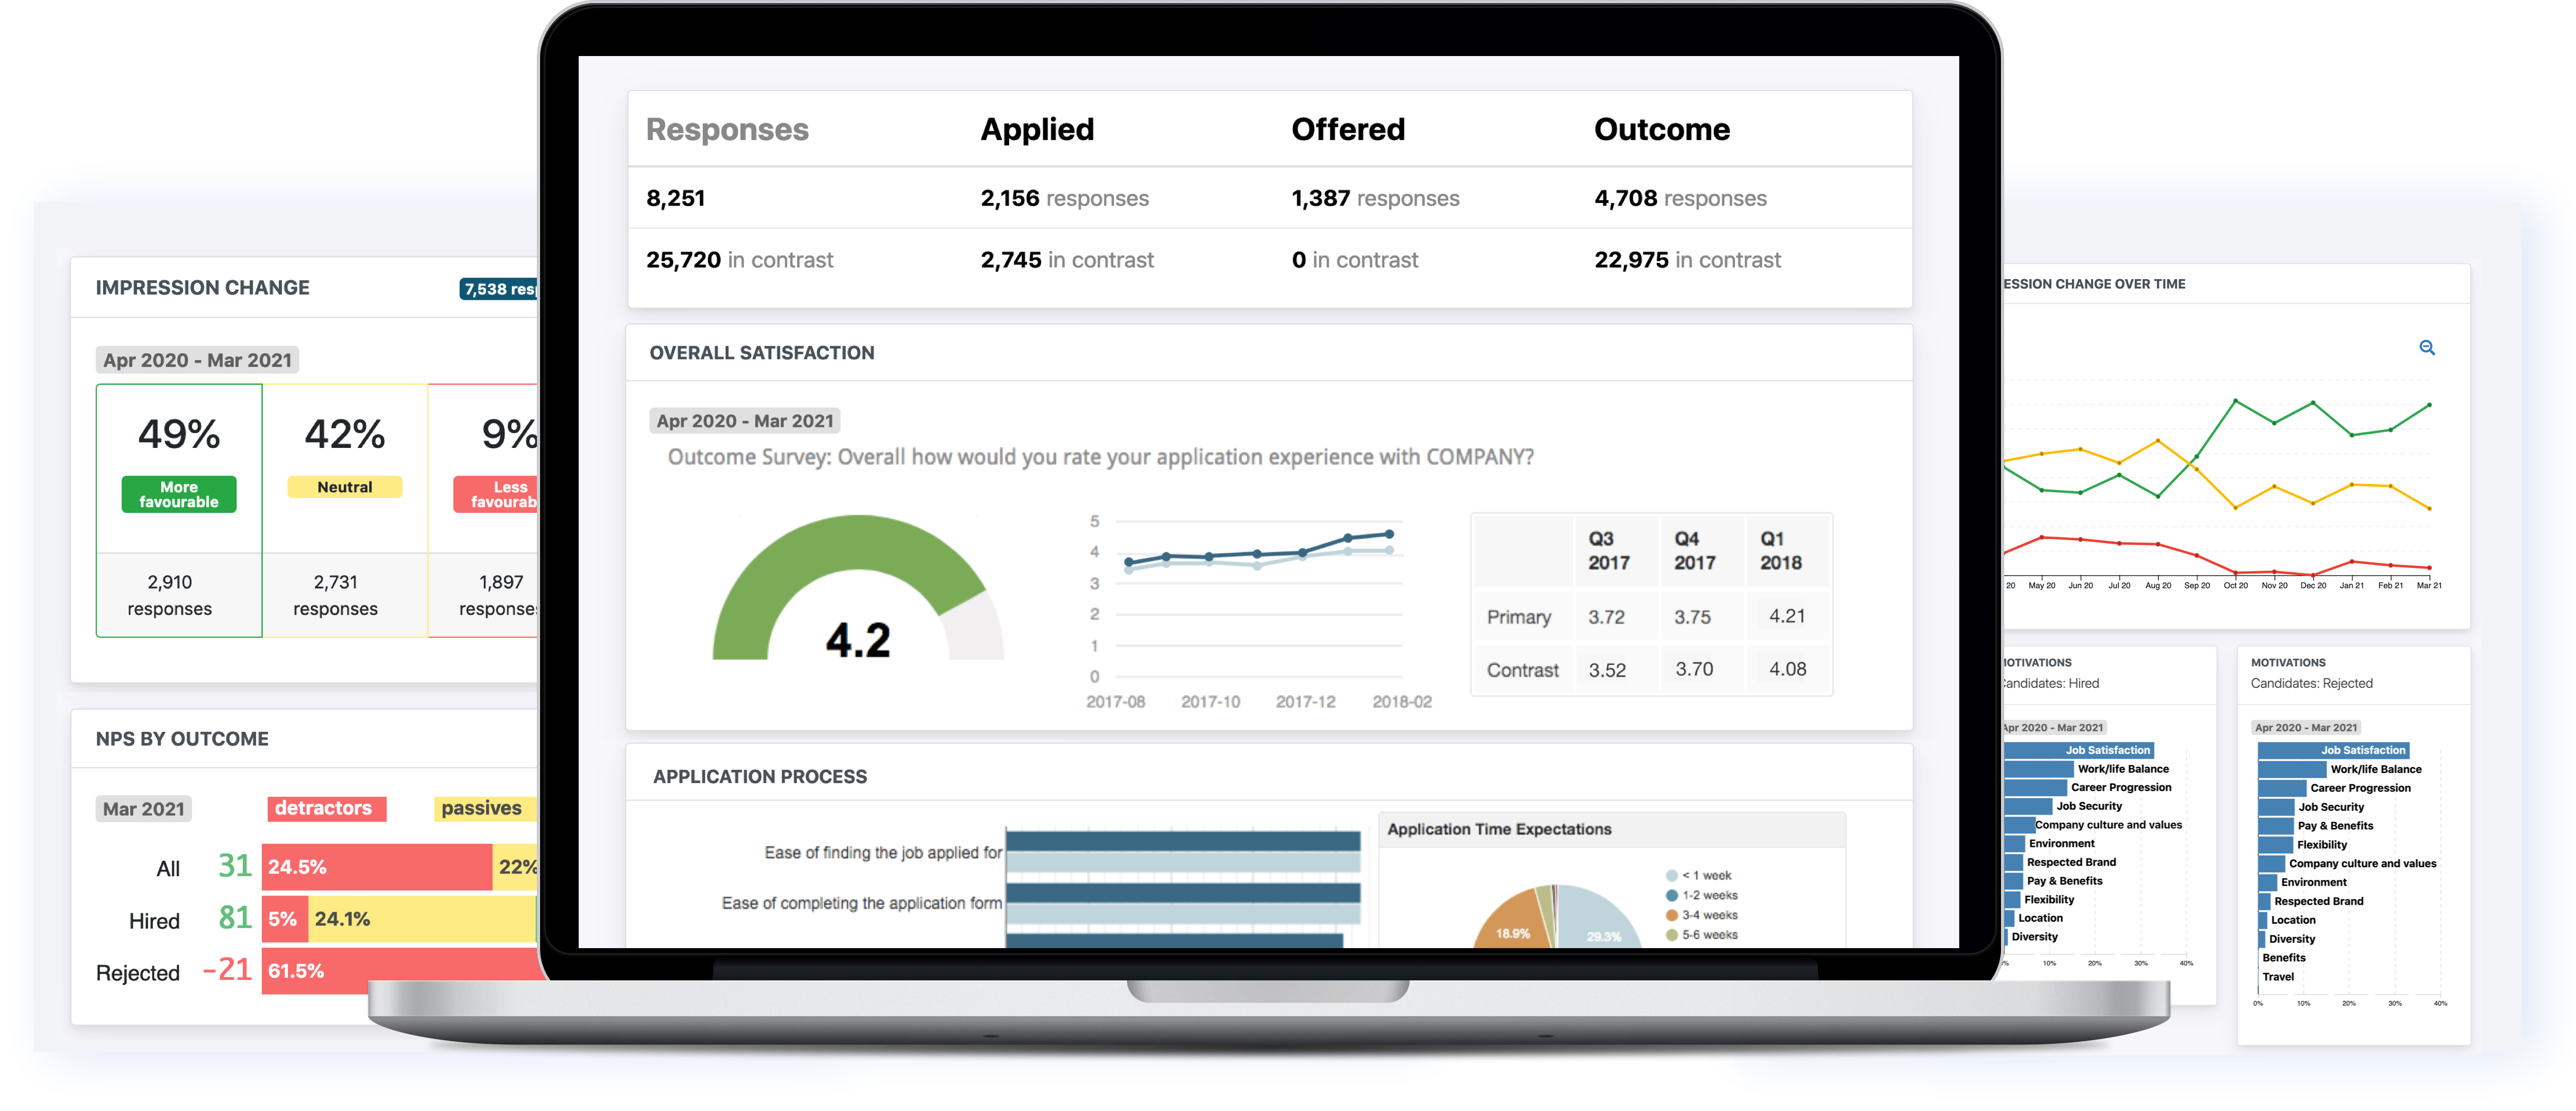 Mystery Applicant dashboard images